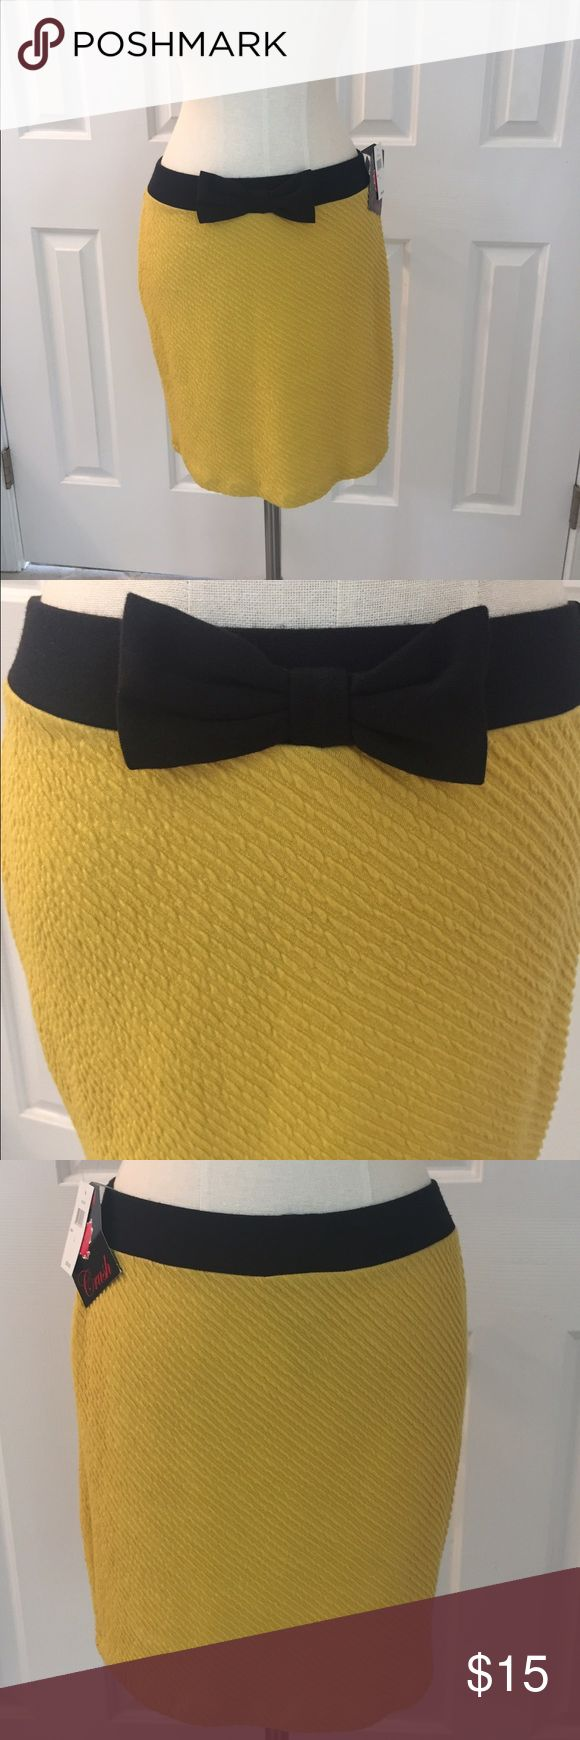 NWT Sexy Yellow Bow Stretch Skirt Large NWT Sexy yellow stretch skirt with black waistband and bow. Size Large poly/Spandex . Heart Crush Skirts